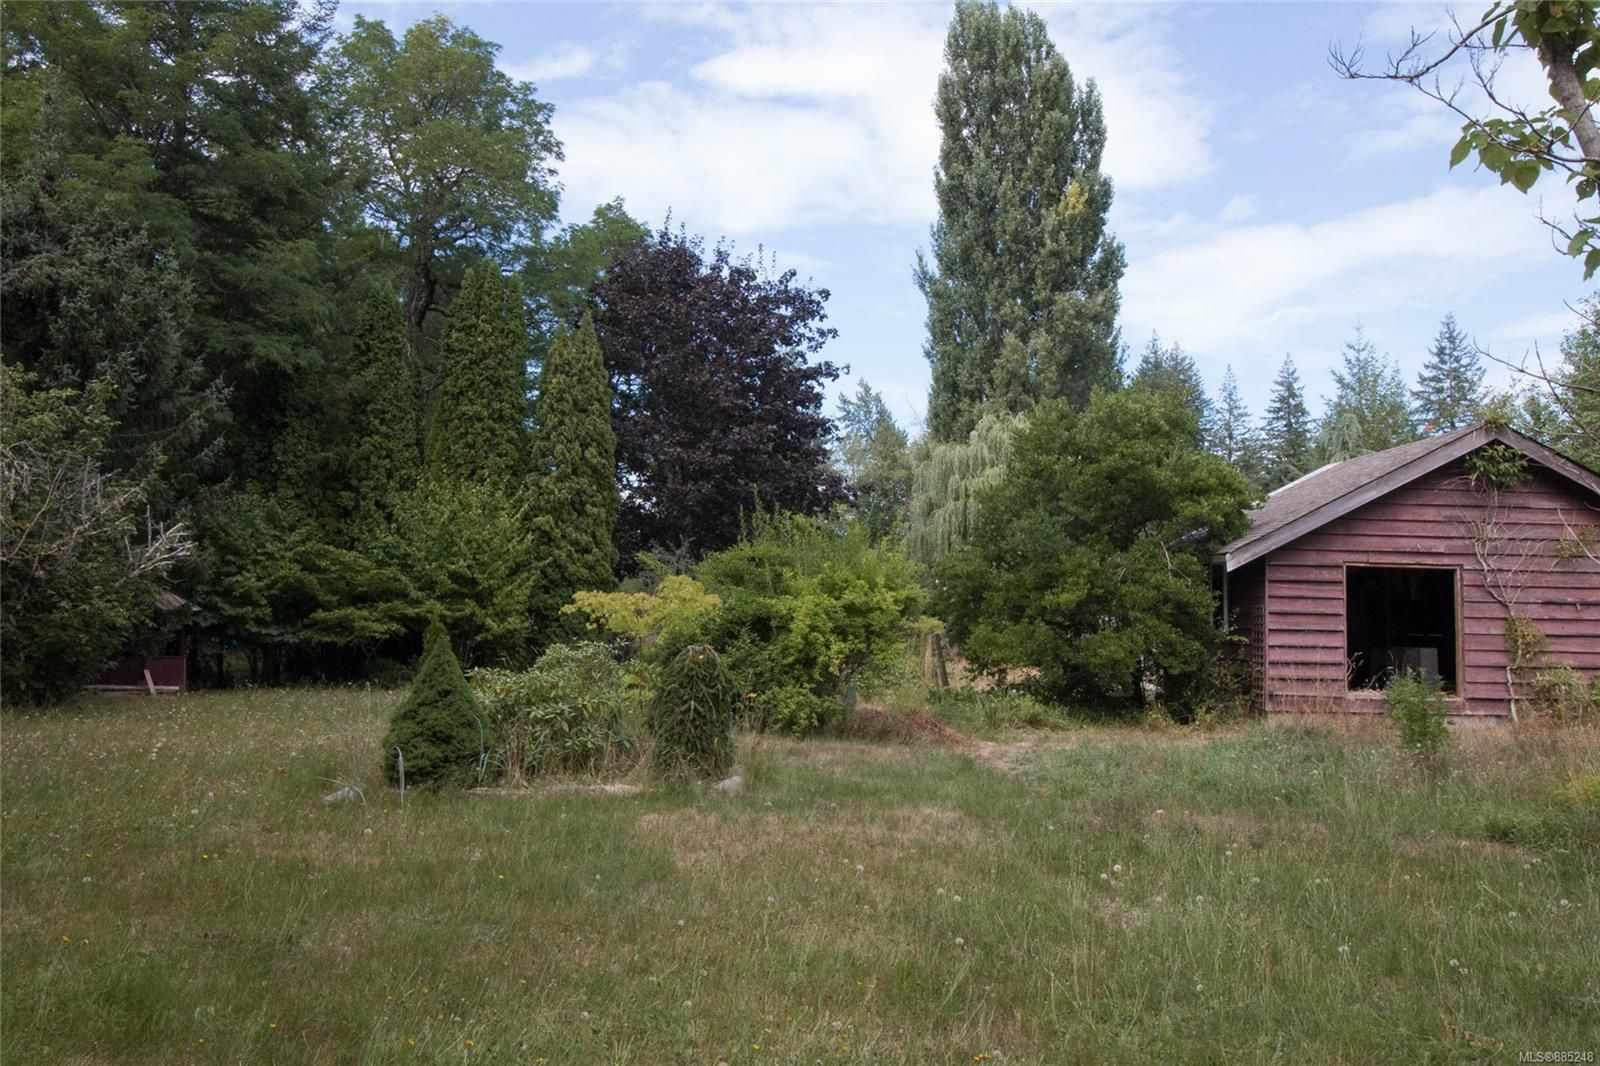 Photo 11: Photos: 5866 Nelson Rd in : CV Courtenay North House for sale (Comox Valley)  : MLS®# 885248